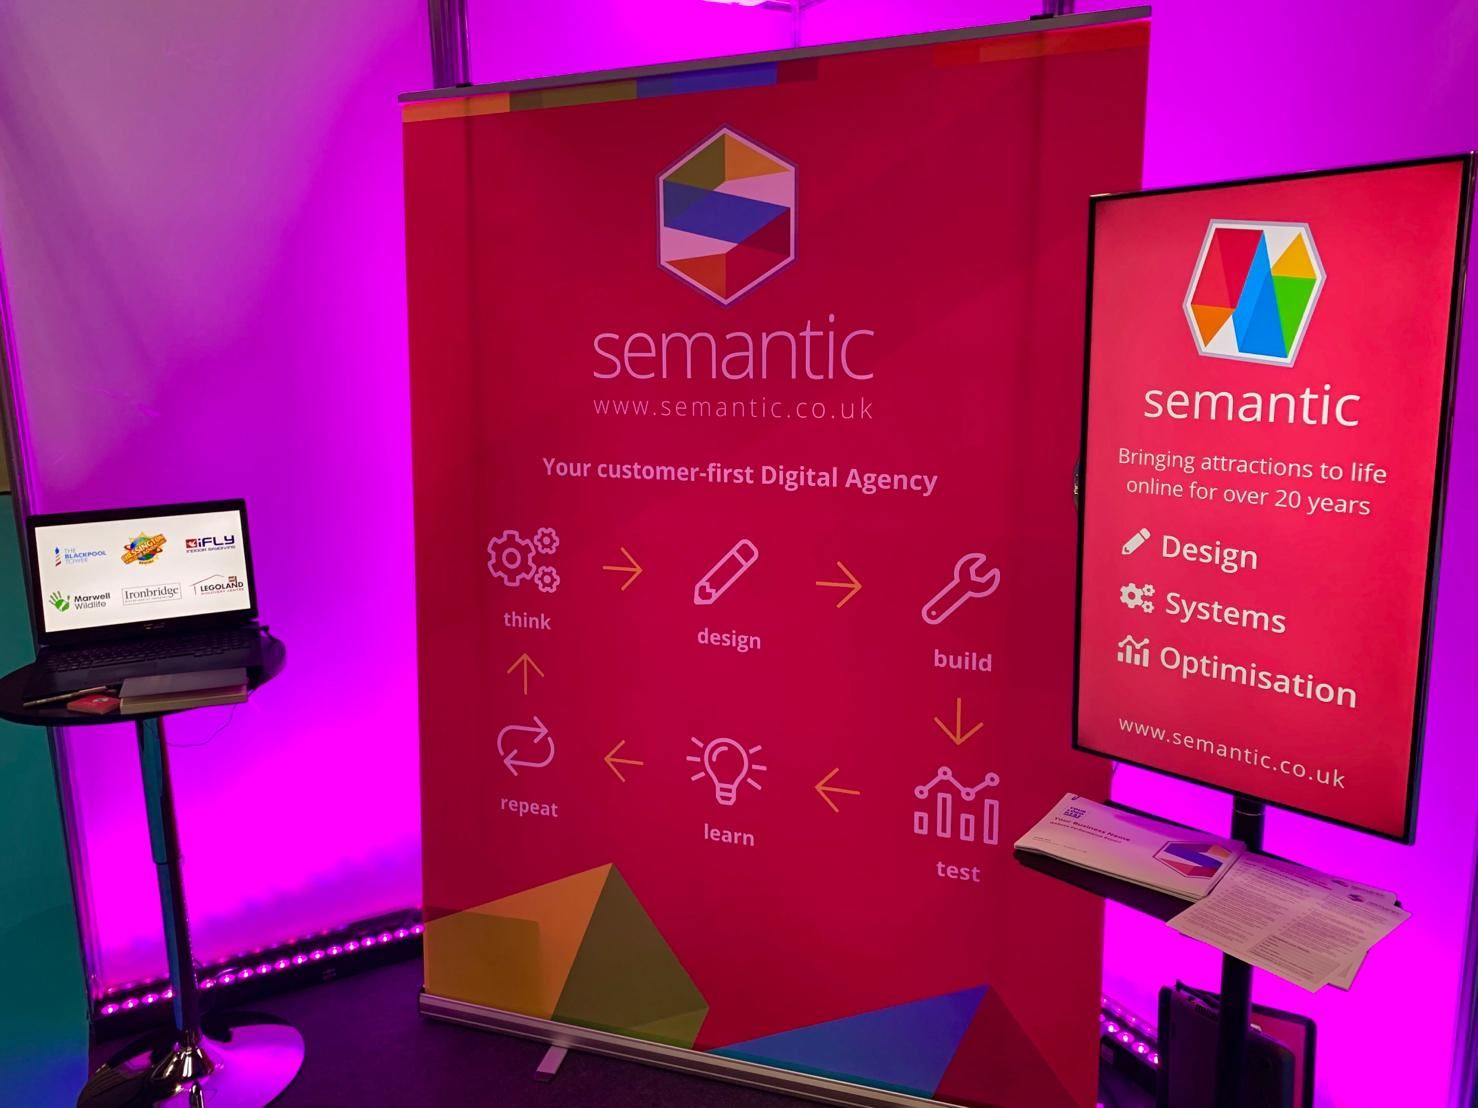 Semantic stand at an exhibition